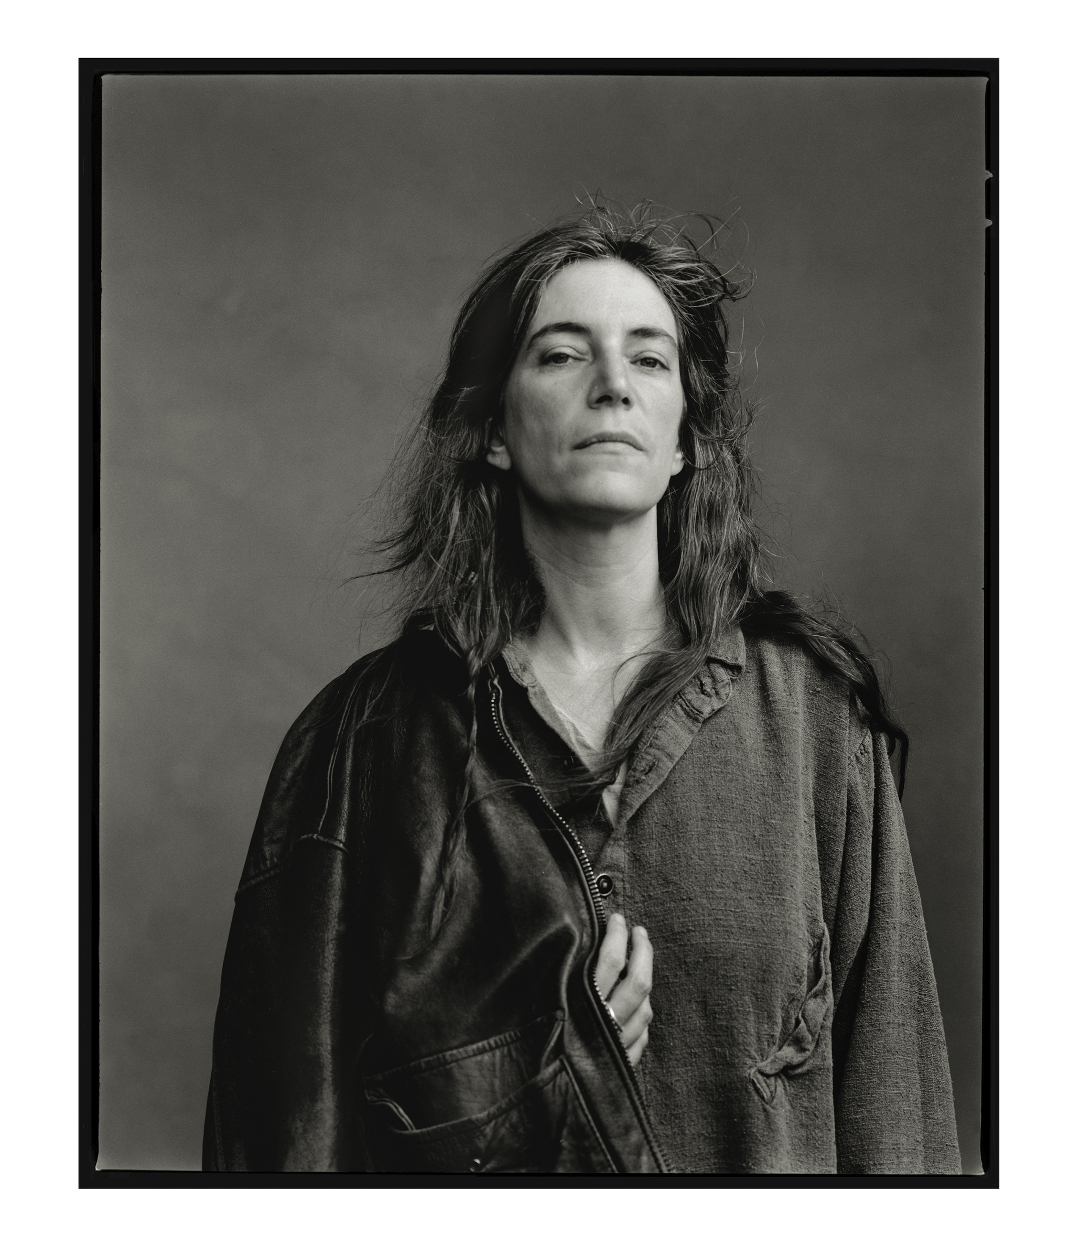 Patti Smith, New York City, 1996. Photograph © Annie Leibovitz. From Annie Leibovitz At Work